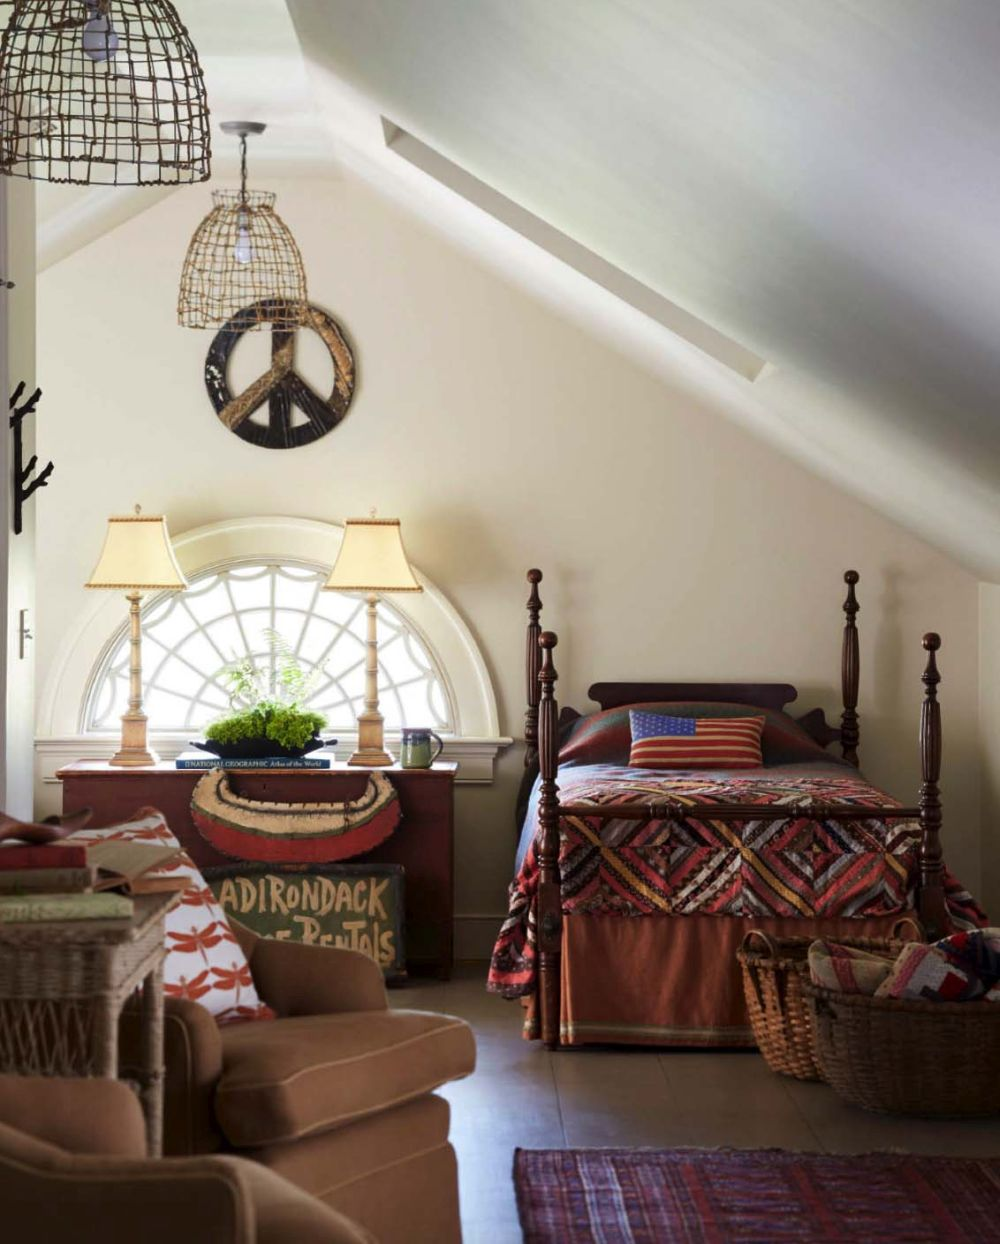 The upstairs bedrooms looks very cozy thanks to the small semi circular window and the pitched roof